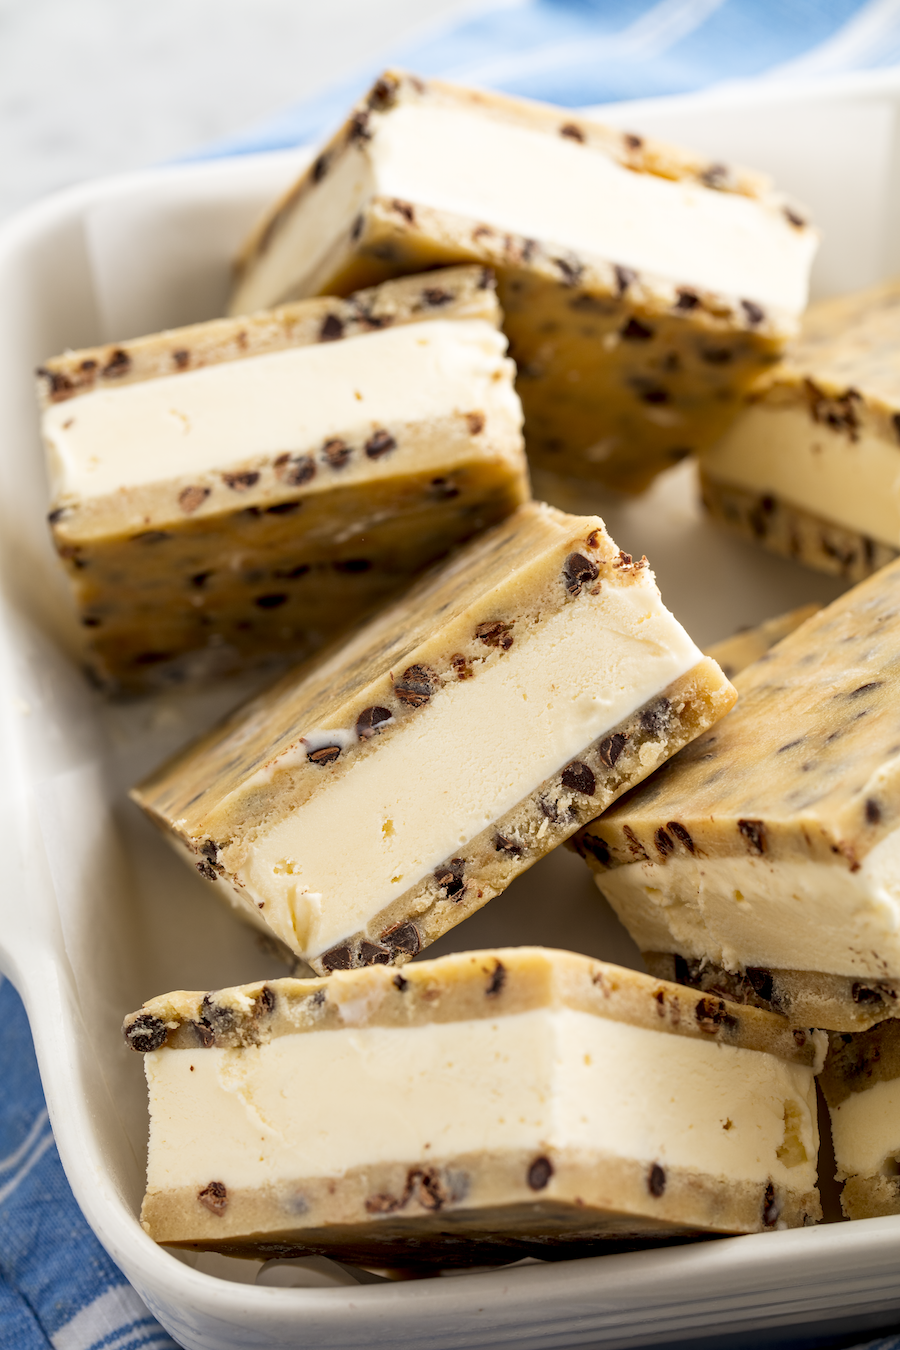 """<p>This will RUIN you for all other ice cream sandwiches.</p><p>Get the recipe from <a href=""""https://www.delish.com/cooking/recipe-ideas/recipes/a47405/cookie-dough-ice-cream-sandwiches-recipe/"""" rel=""""nofollow noopener"""" target=""""_blank"""" data-ylk=""""slk:Delish"""" class=""""link rapid-noclick-resp"""">Delish</a>.</p>"""